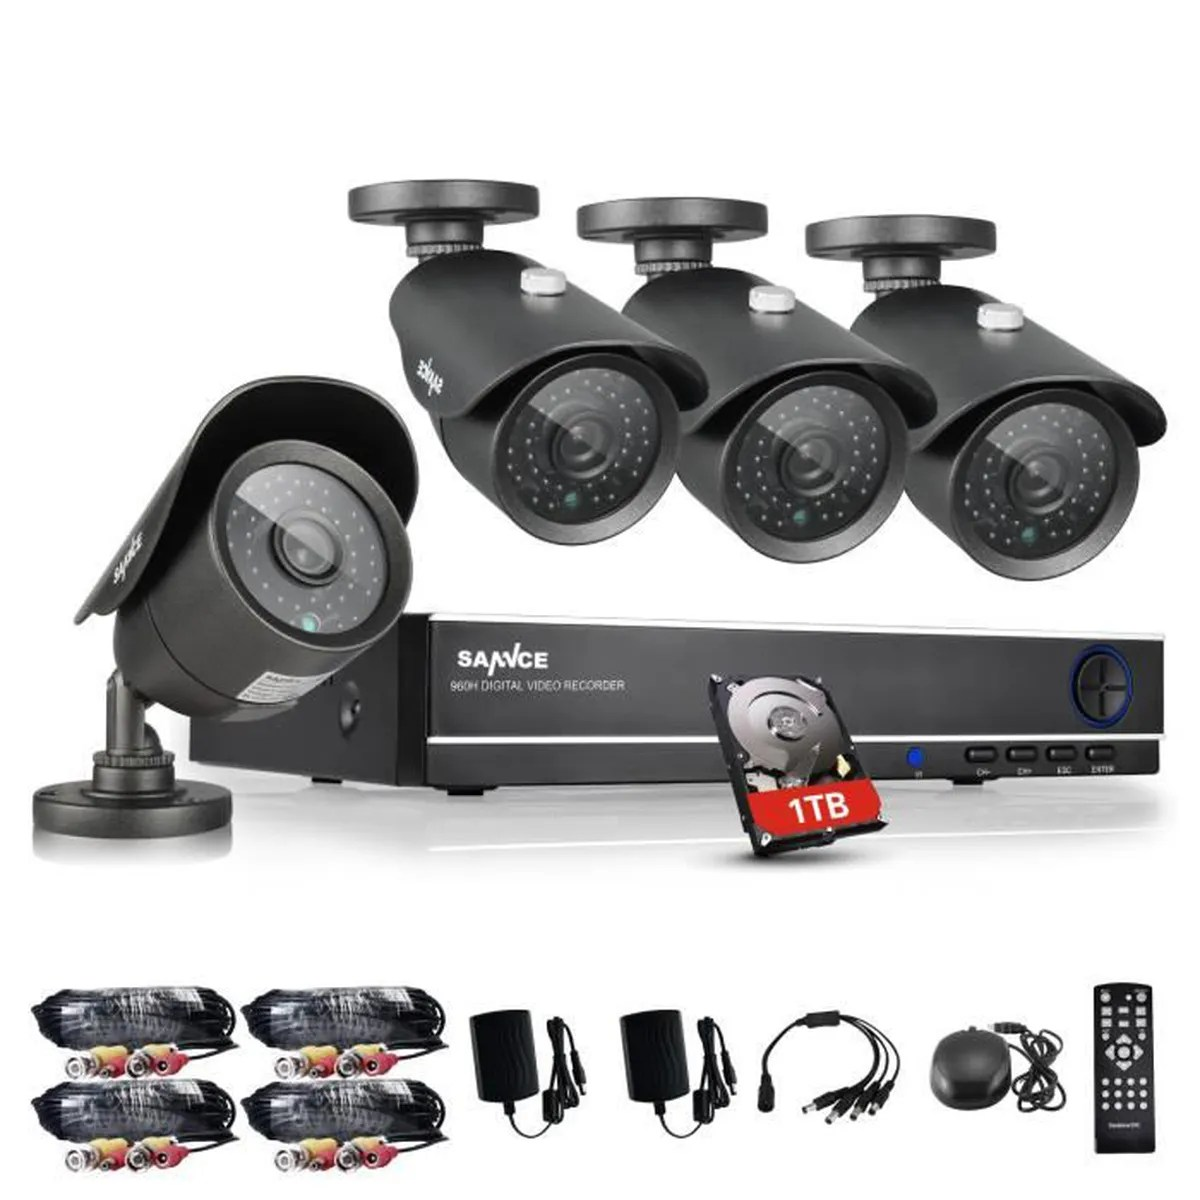 Camera Exterieur Video Surveillance Camera De Surveillance Exterieur Kit Camera Surveillance